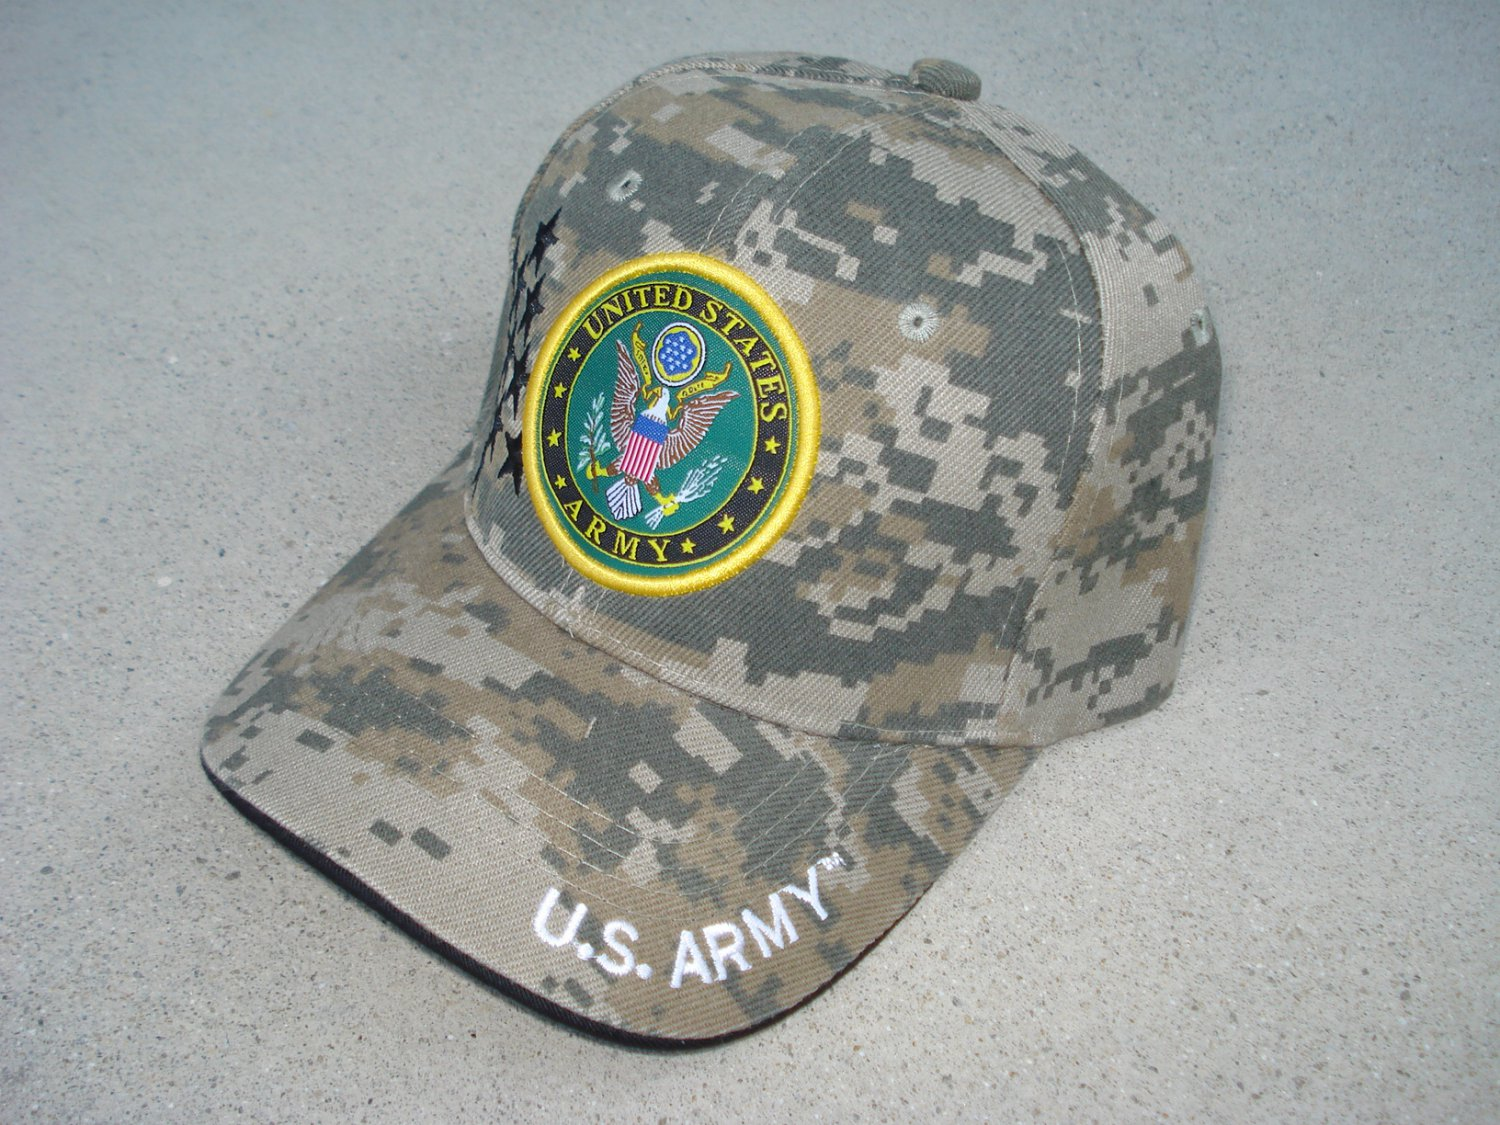 c48614a9894 US Army Digital Camo Baseball Cap with United States Army logo - licensed  by US Army